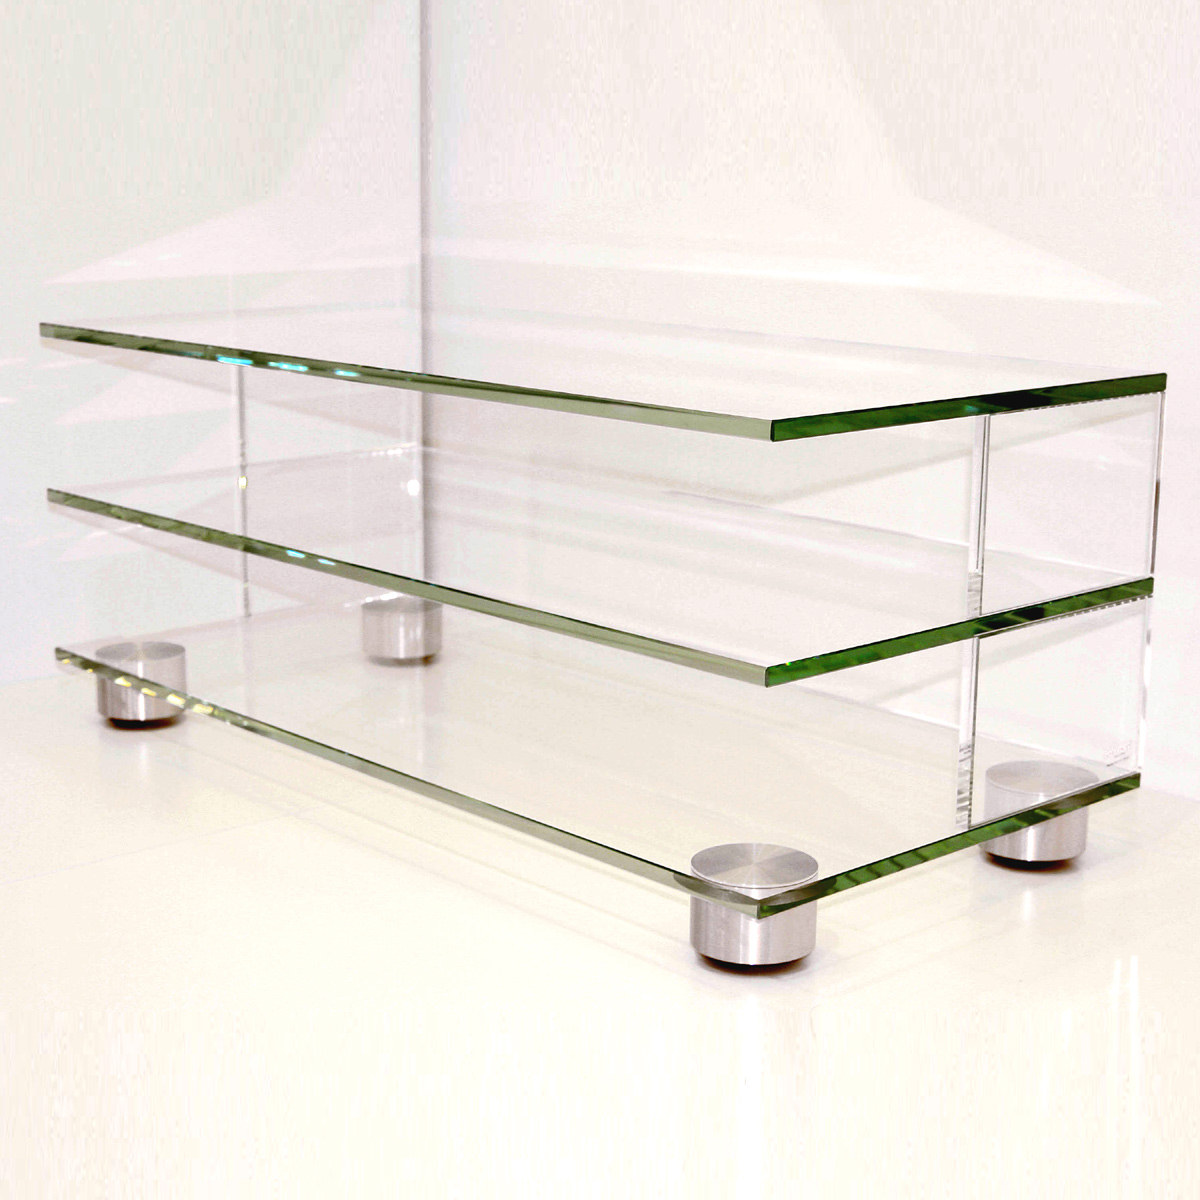 Tv Rack Glas Mit Rollen Glass Concept Mid Roll F / Tv Wagen / Rollbar Bei Hifi-tv-moebel.de